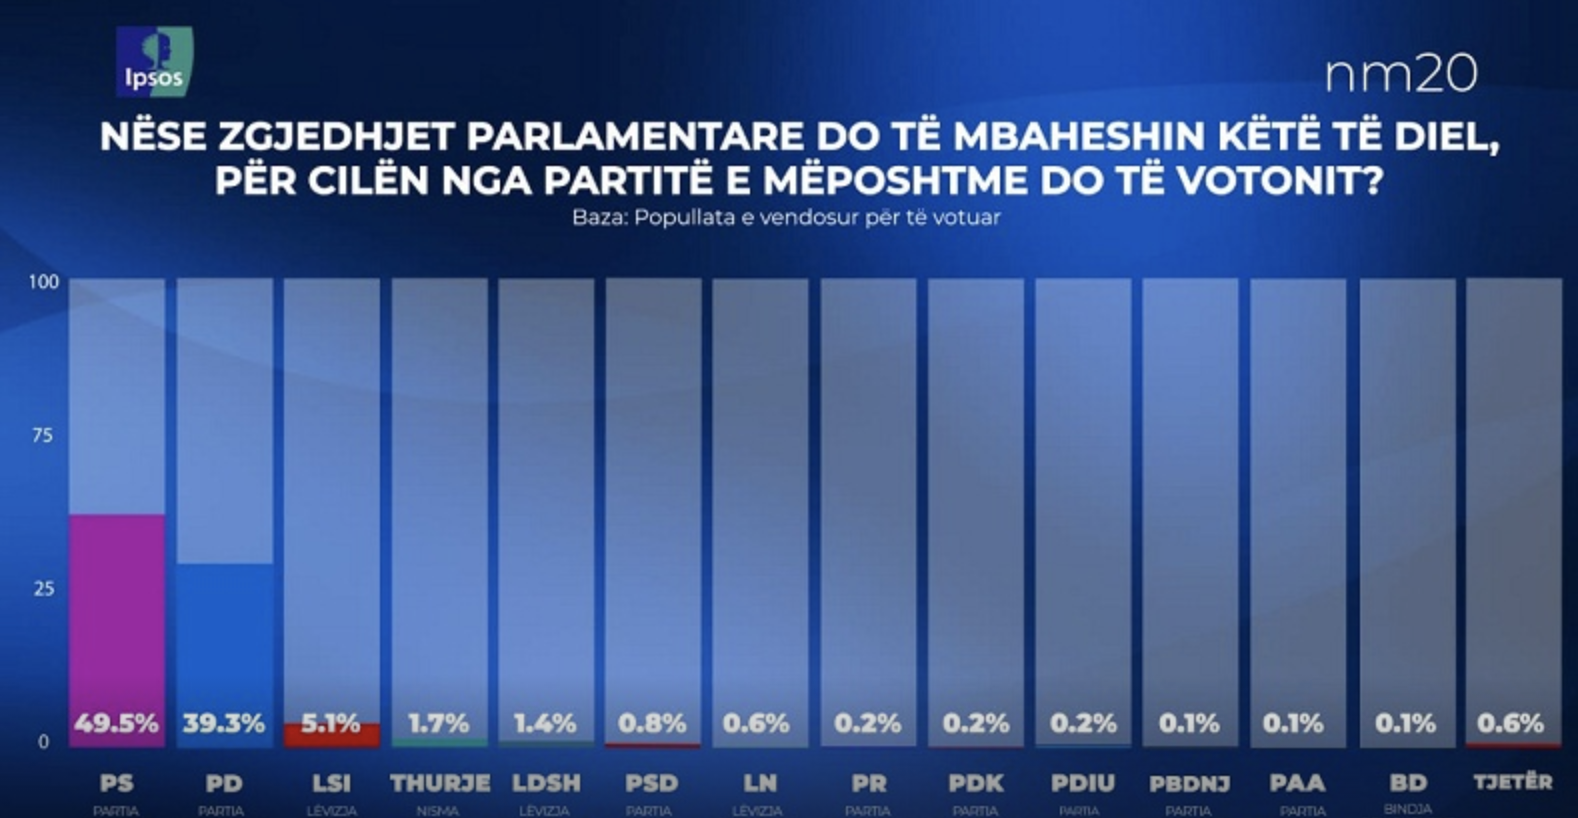 Albania: Rama's Socialist Party leads IPSOS poll with 49.5%